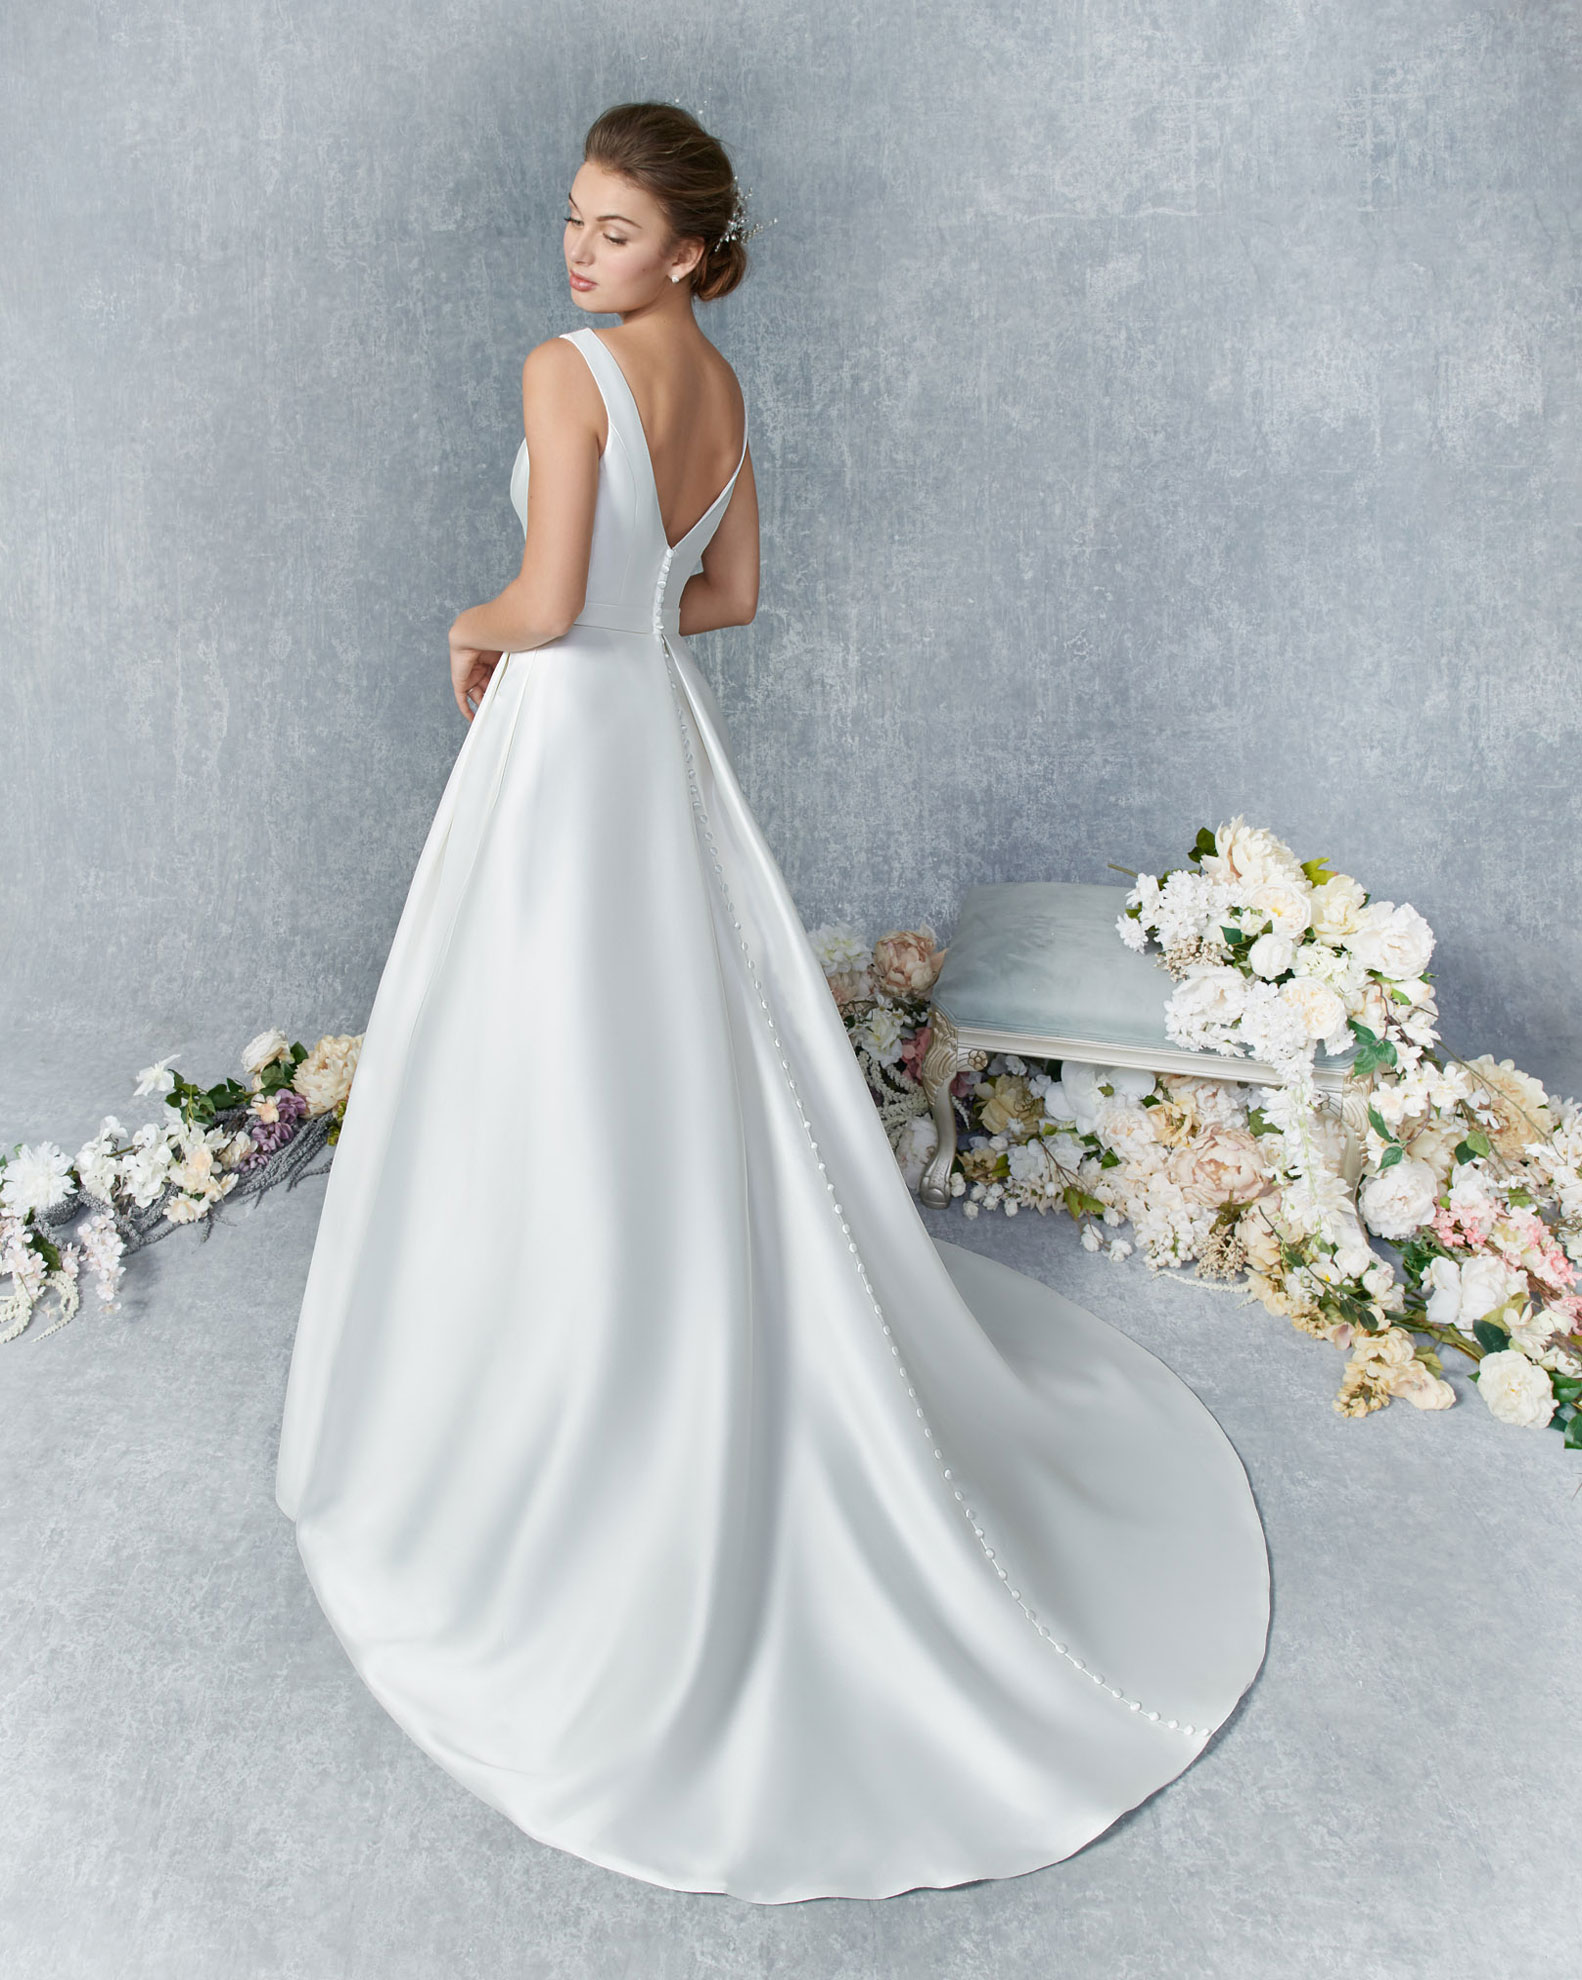 Kenneth Winston, style 1841 - Elegant High Neck Gown That is Perfect for Your Wedding Style